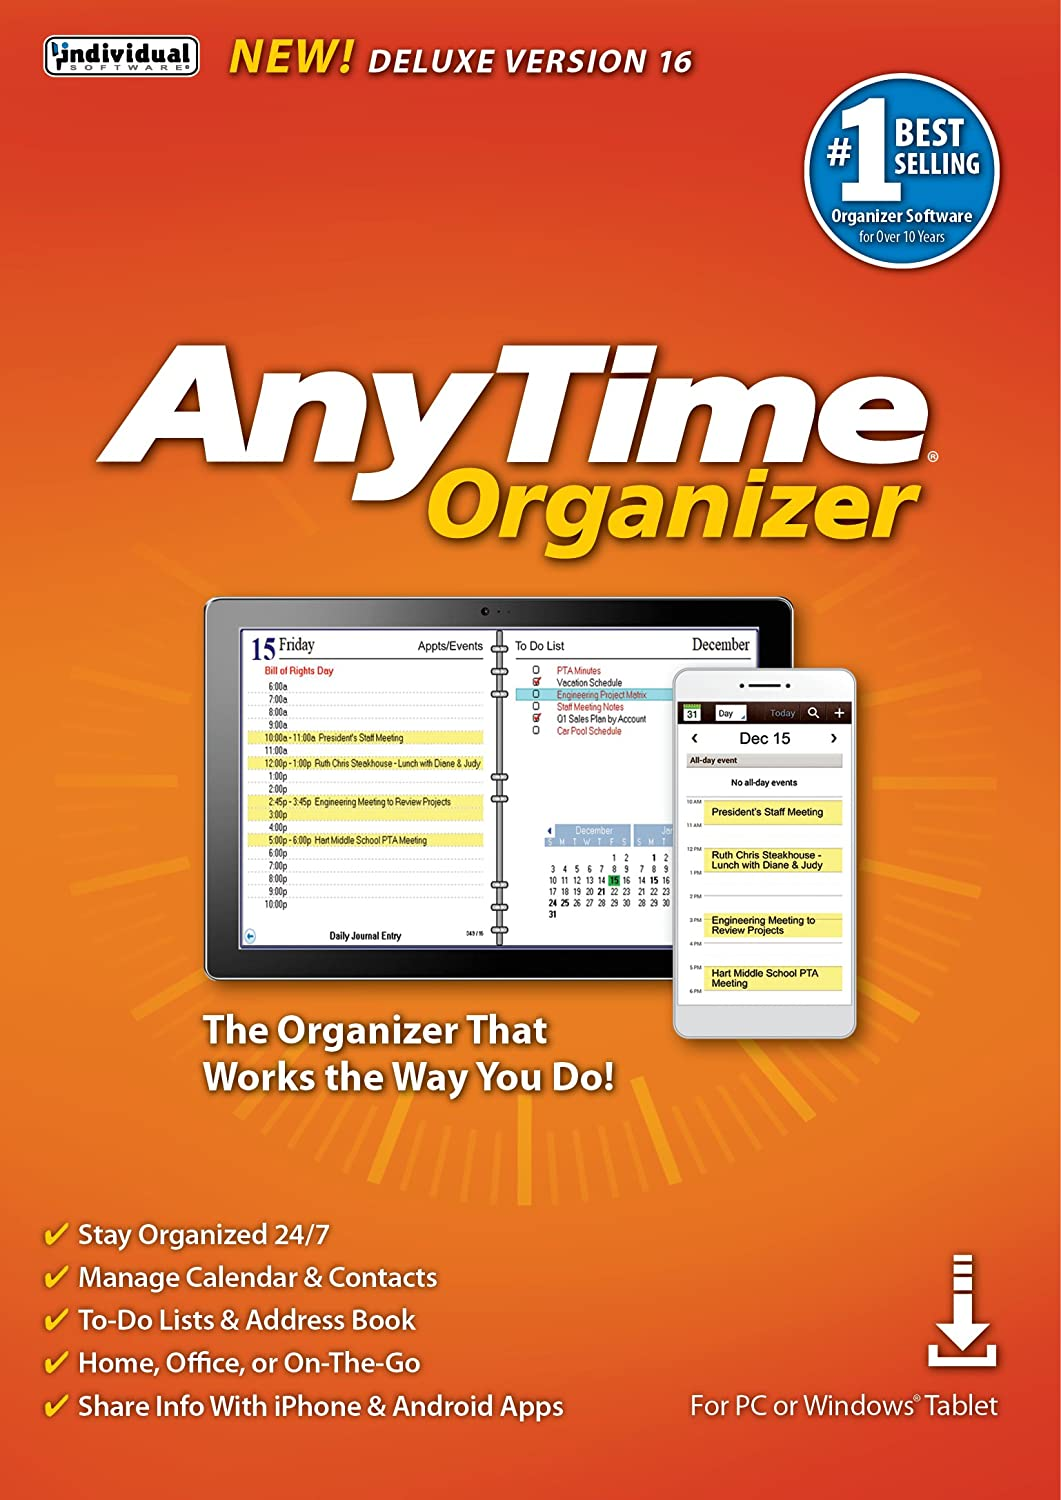 AnyTime Organizer Deluxe 16 [PC Download] 81akdf7F8QL